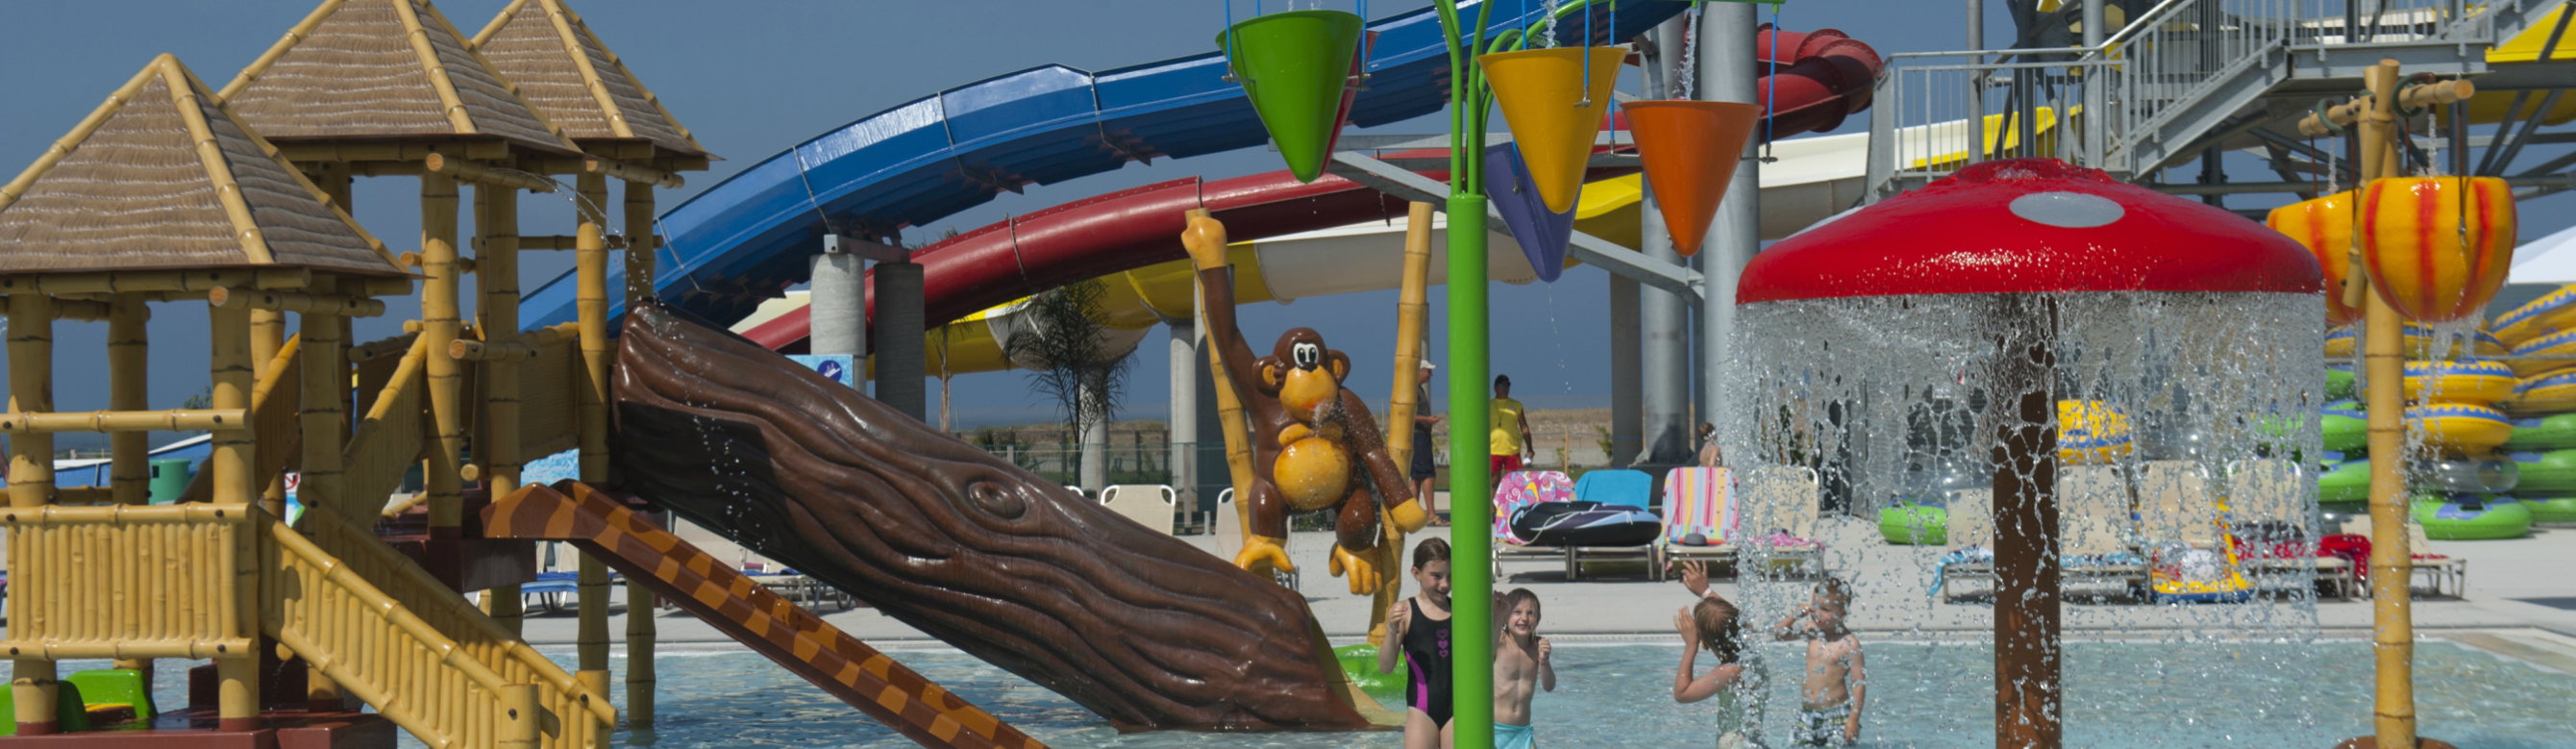 Louis_Phaethon_Beach_-_Kids_pool.png